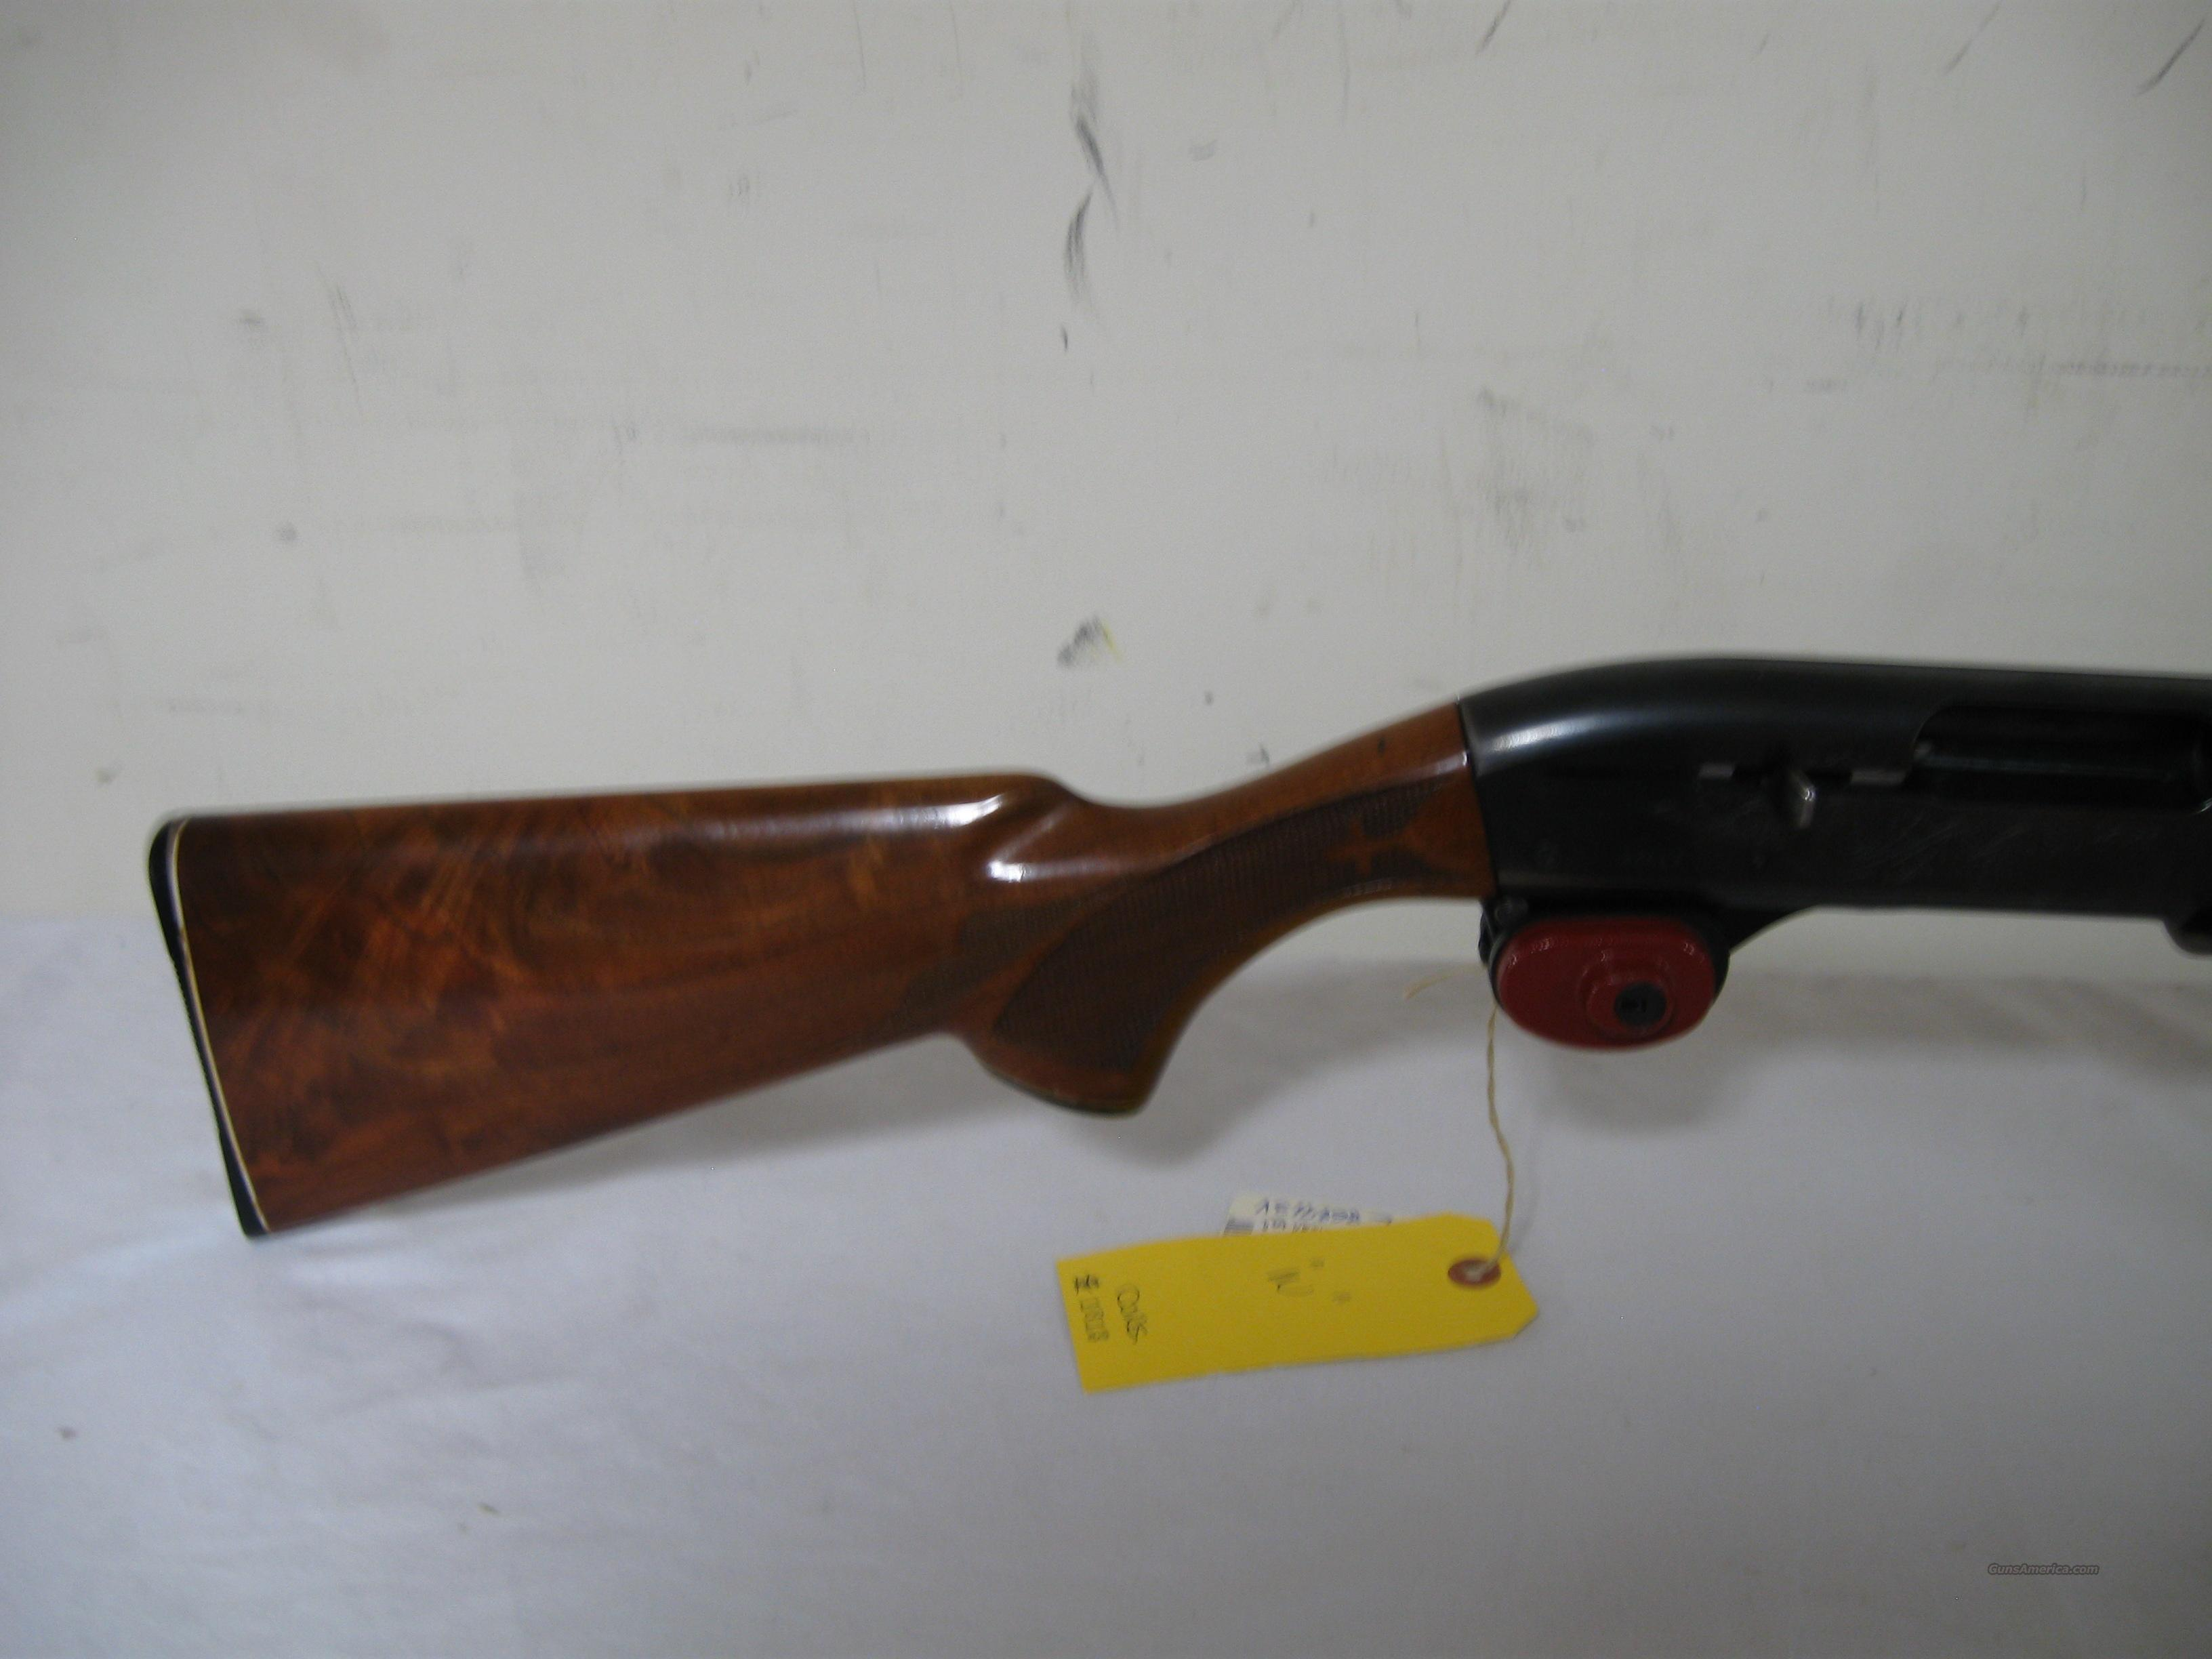 Remington 1100 Skeet-B Shotgun  Guns > Shotguns > Remington Shotguns  > Autoloaders > Trap/Skeet